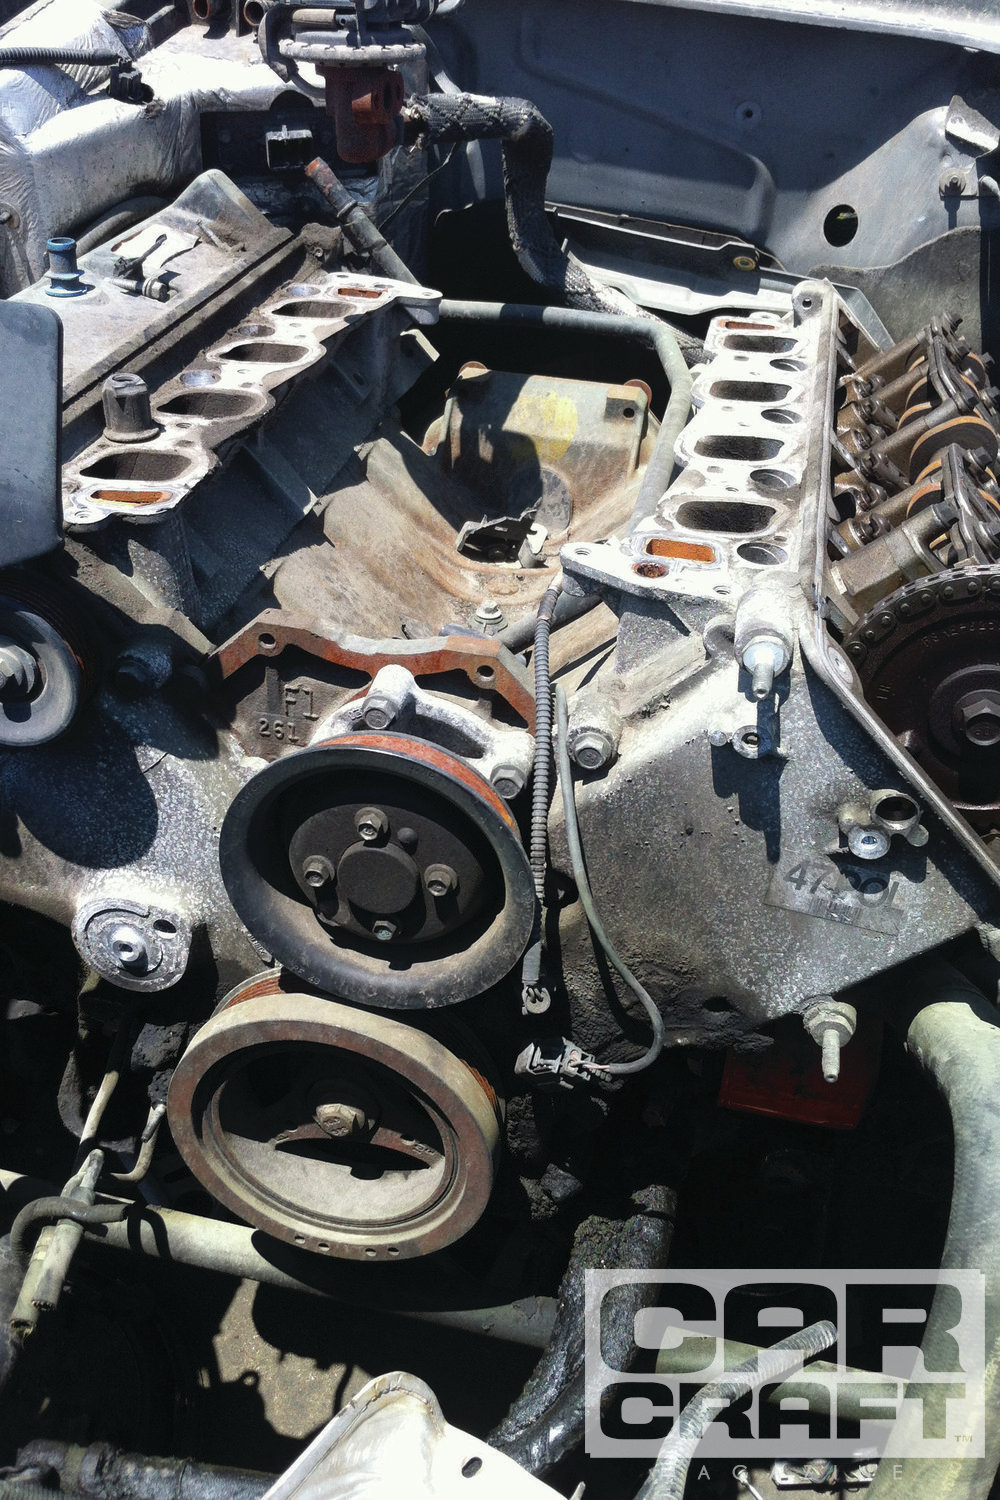 Junkyards across the country are littered with SOHC 4.6-powered Fords, so a replacement manifold should just be a short trip away. Be sure to check the donor car's odometer, though. We've seen taxis in our local junkyards with mid-300,000 miles racked up on them. You may want to pass on the manifold from one of these cars.